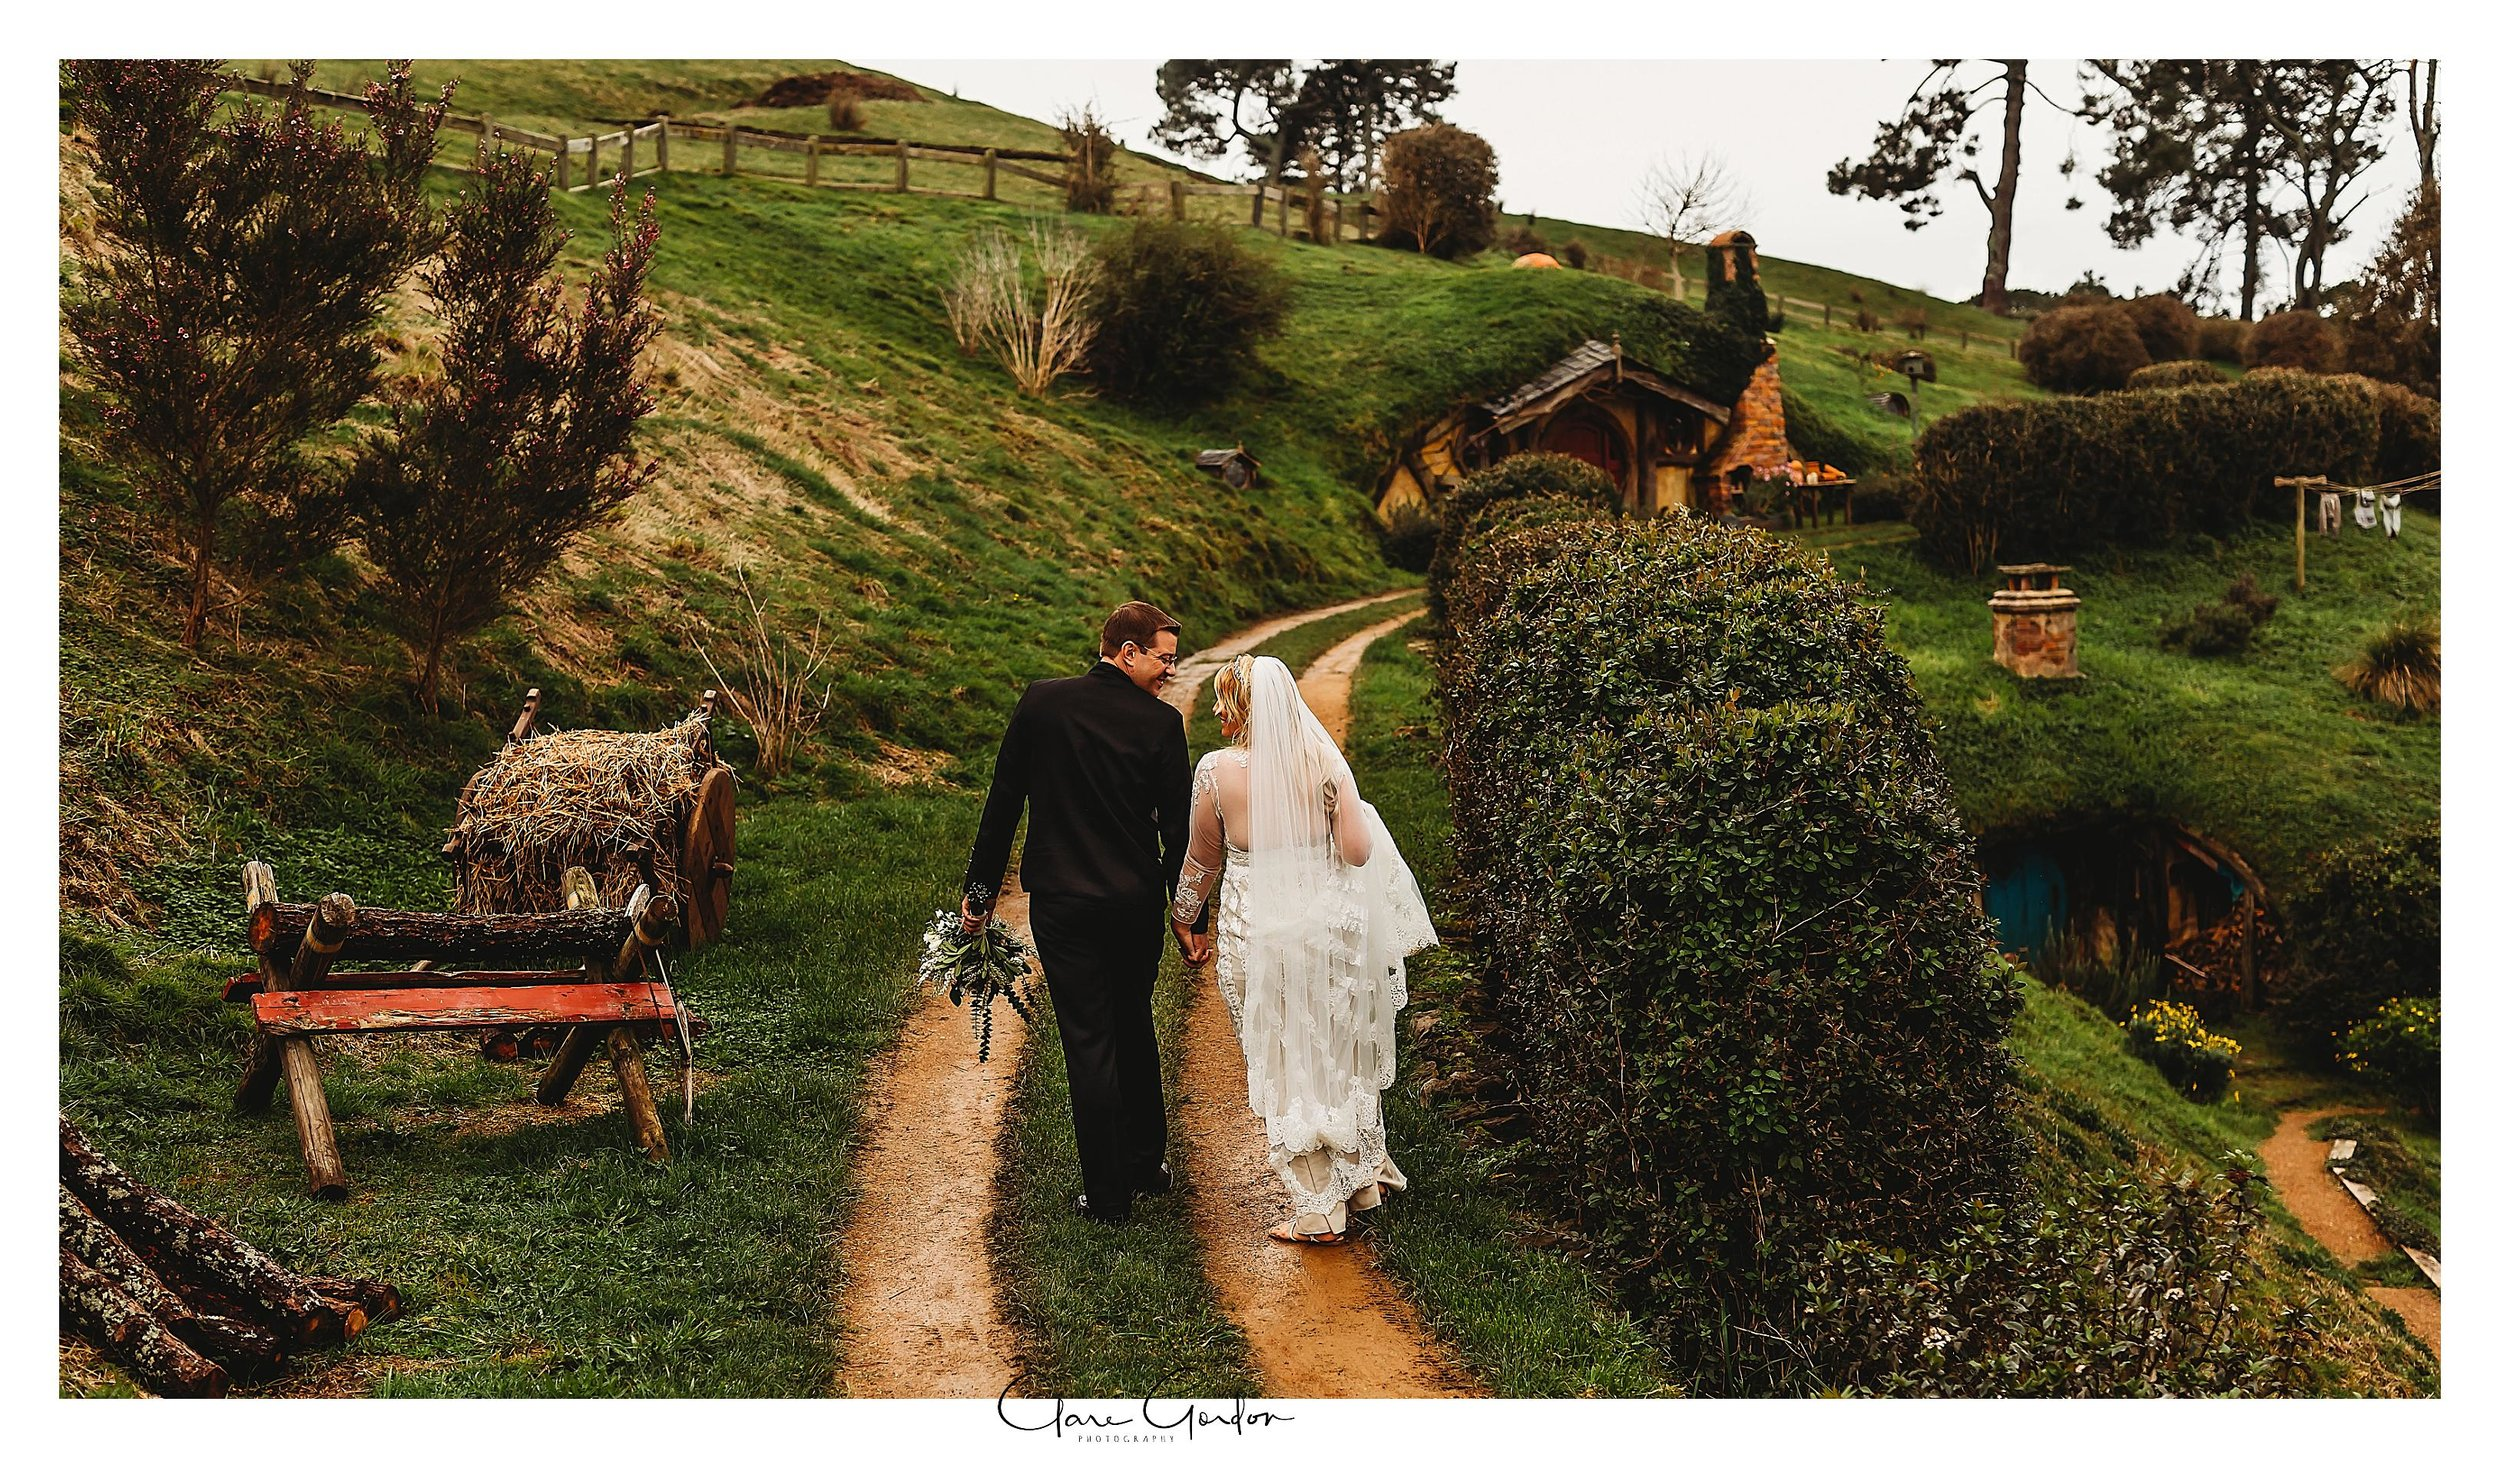 Hobbiton-movie-set-wedding-photo-matamata-bride-and-groom-Photo (5).jpg